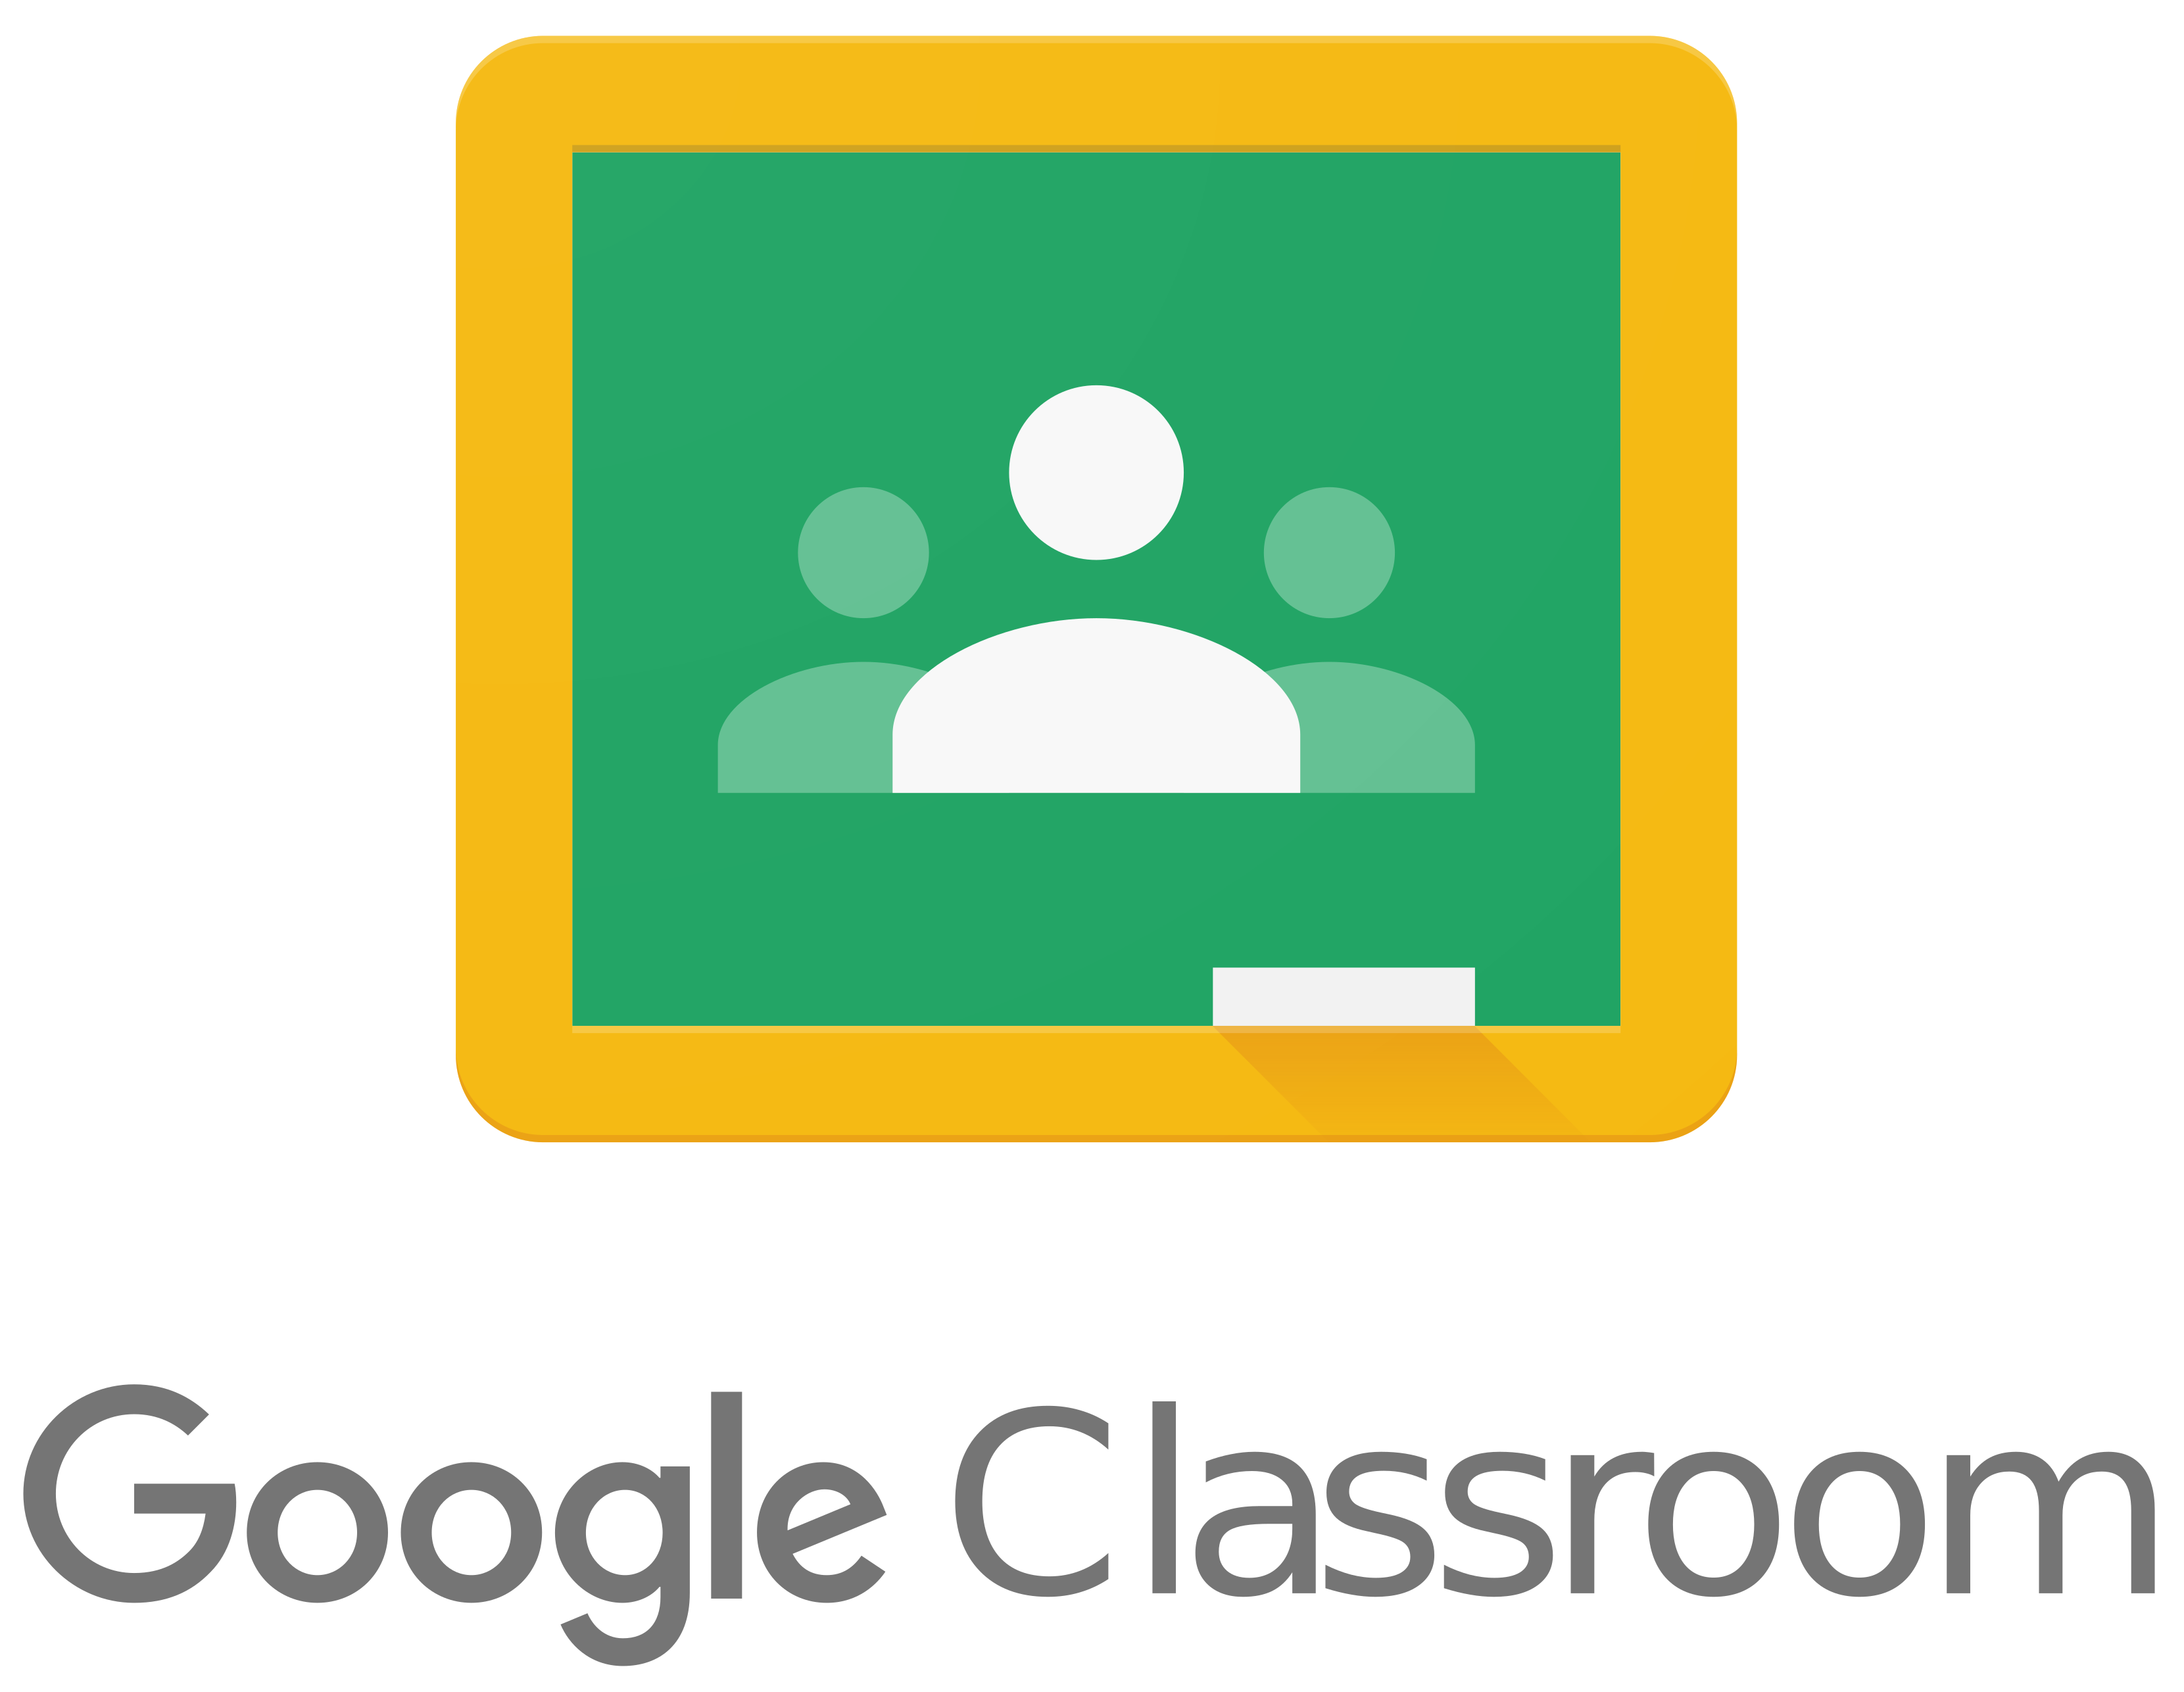 Google Classroom – Technology in the Curriculum